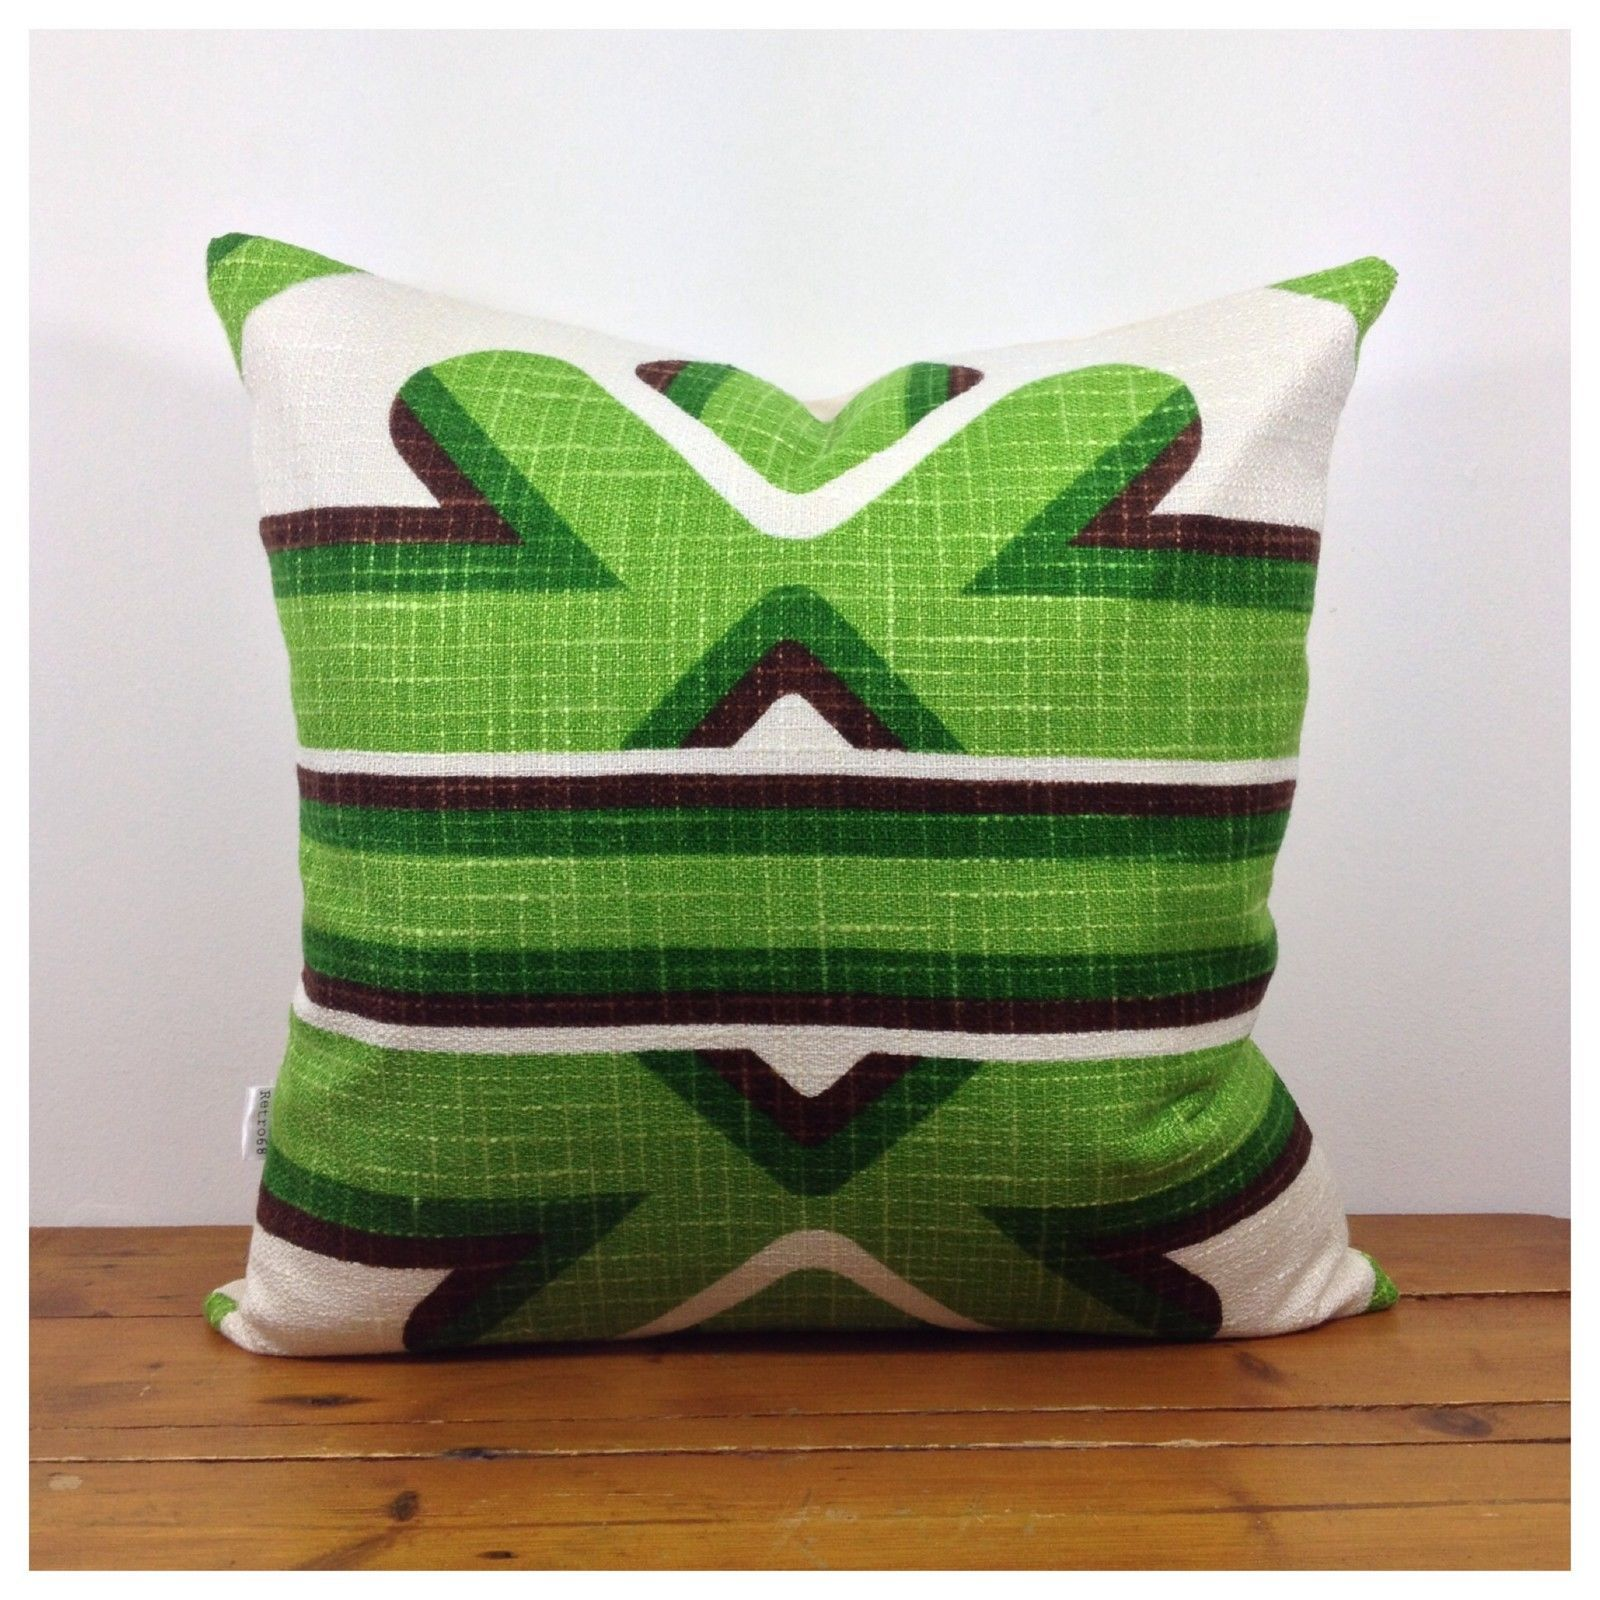 S vintage retro pop art cushion cover